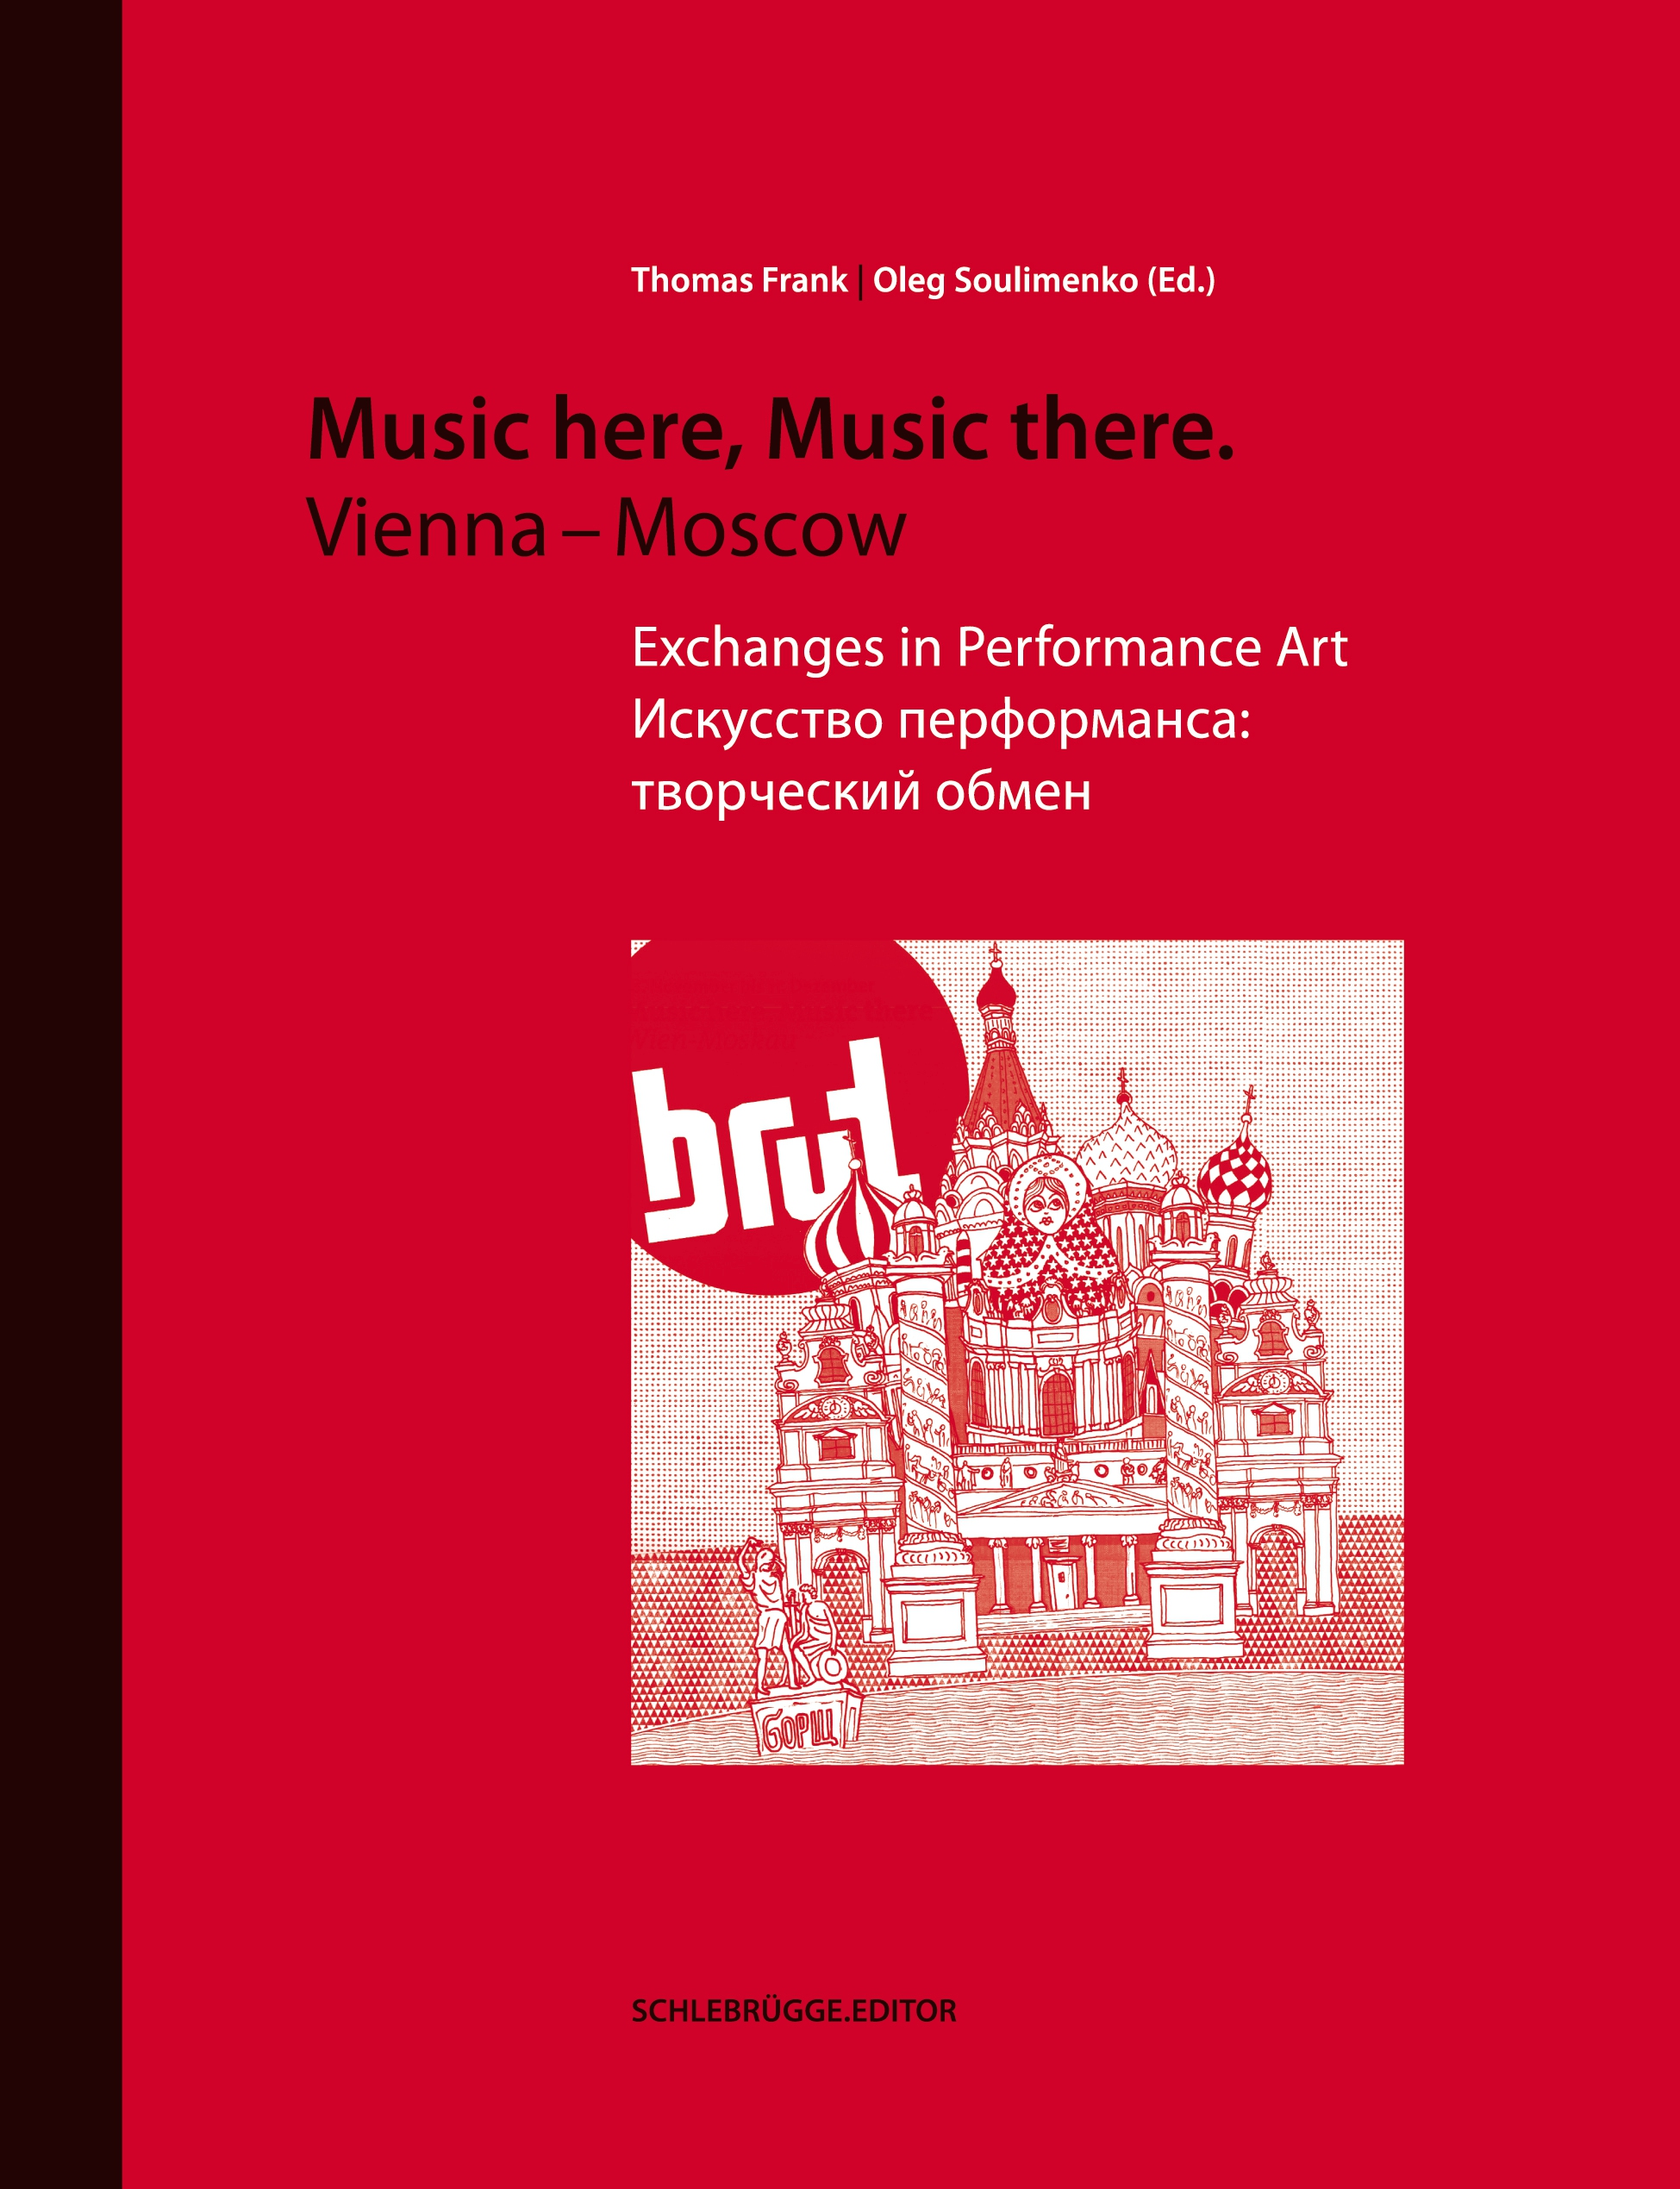 Music here, Music there. Vienna - Moscow Thomas Frank